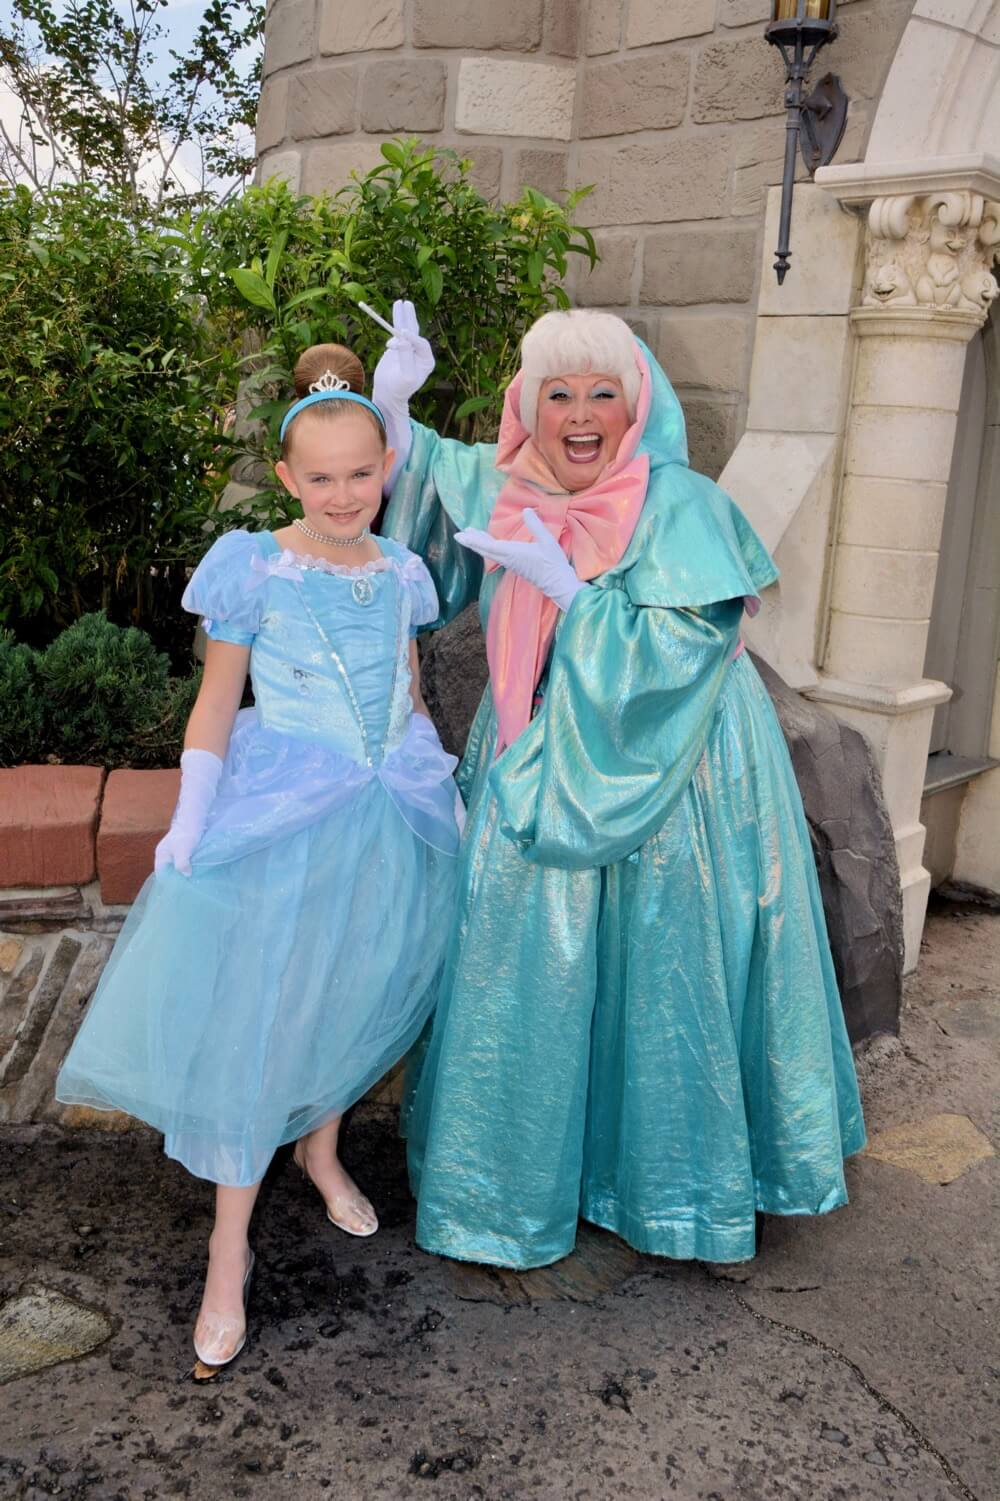 Bibbidi Bobbidi Boutique - Fairy Godmother